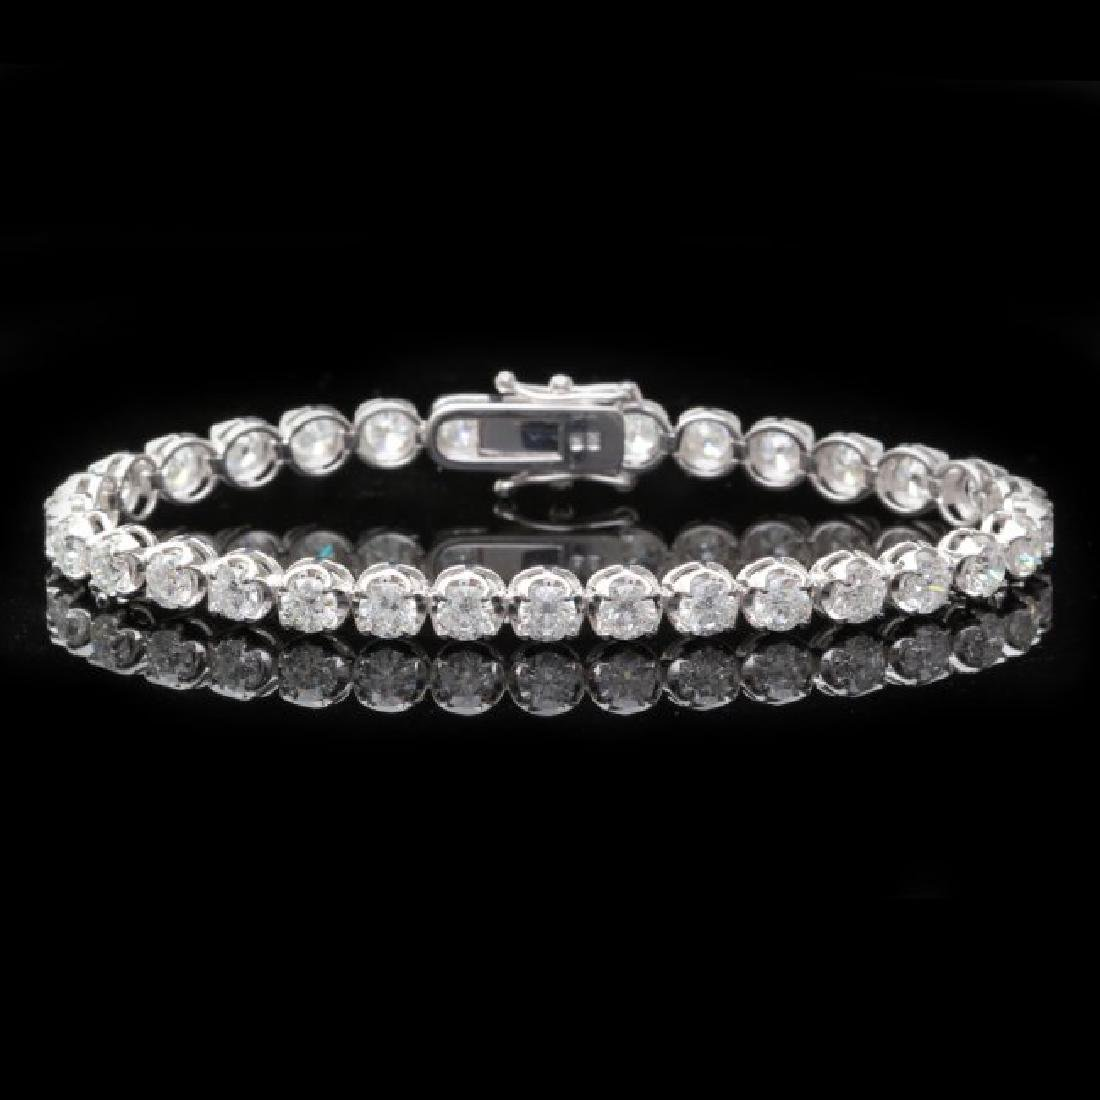 18k White Gold 8.50ct Diamond Bracelet